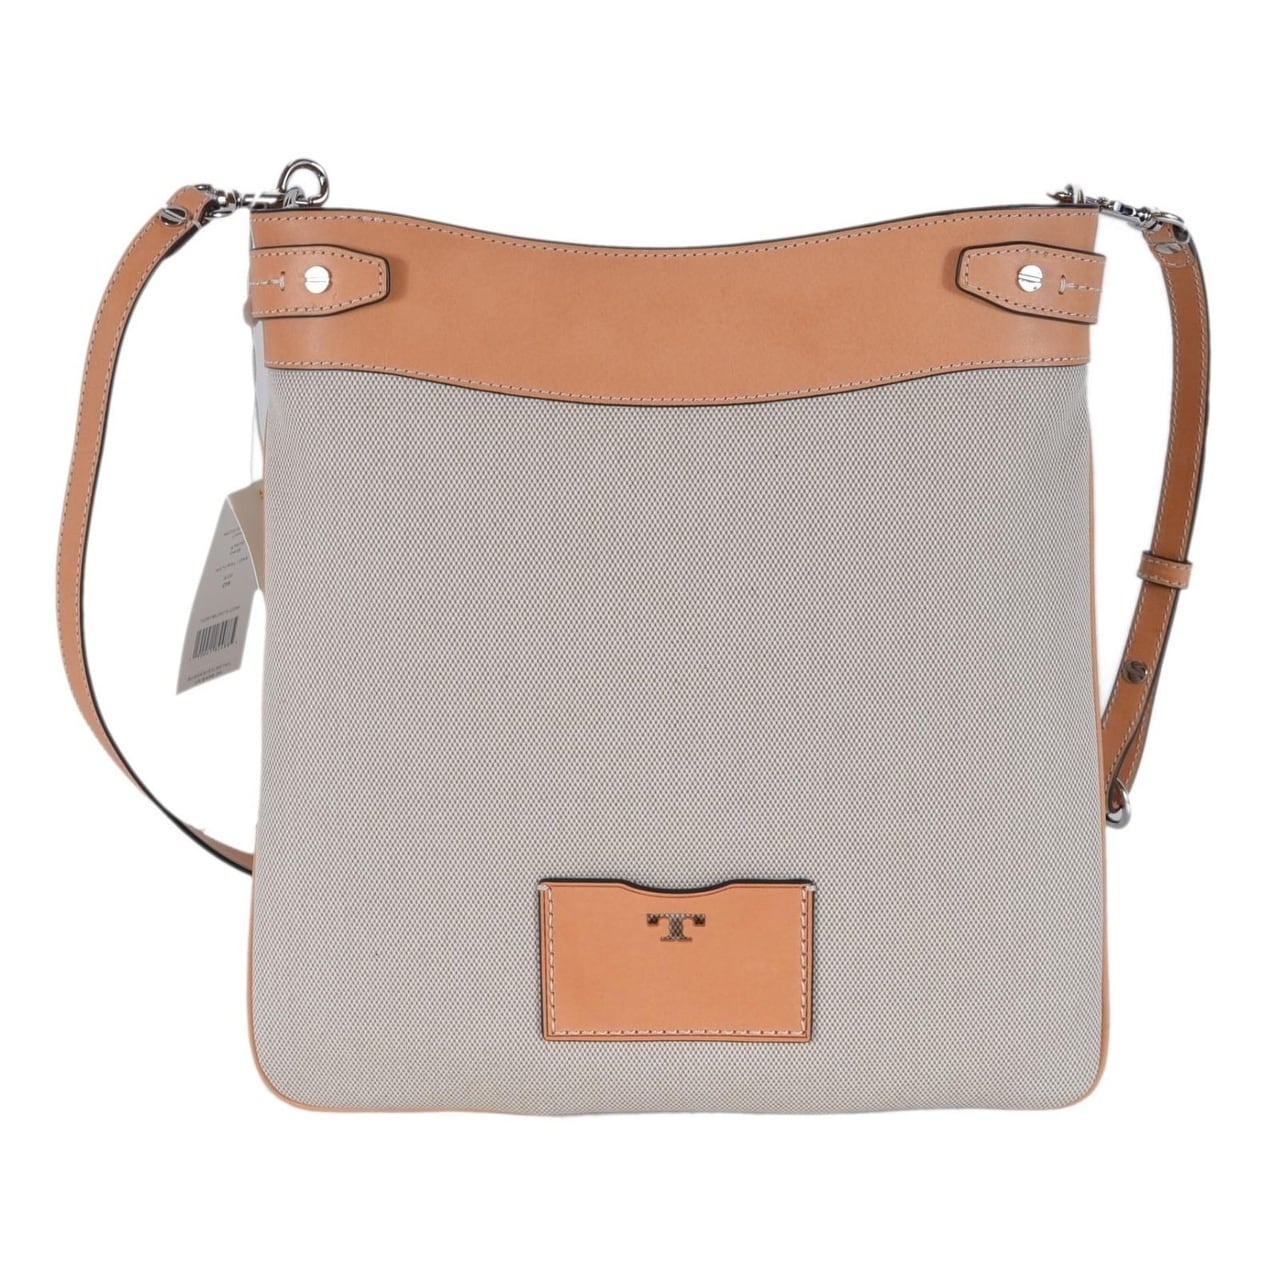 5a518d8fd04 Shop Tory Burch Moto 47979 Tall Canvas Crossbody Swingpack Purse Bag - Free  Shipping Today - Overstock - 25582262